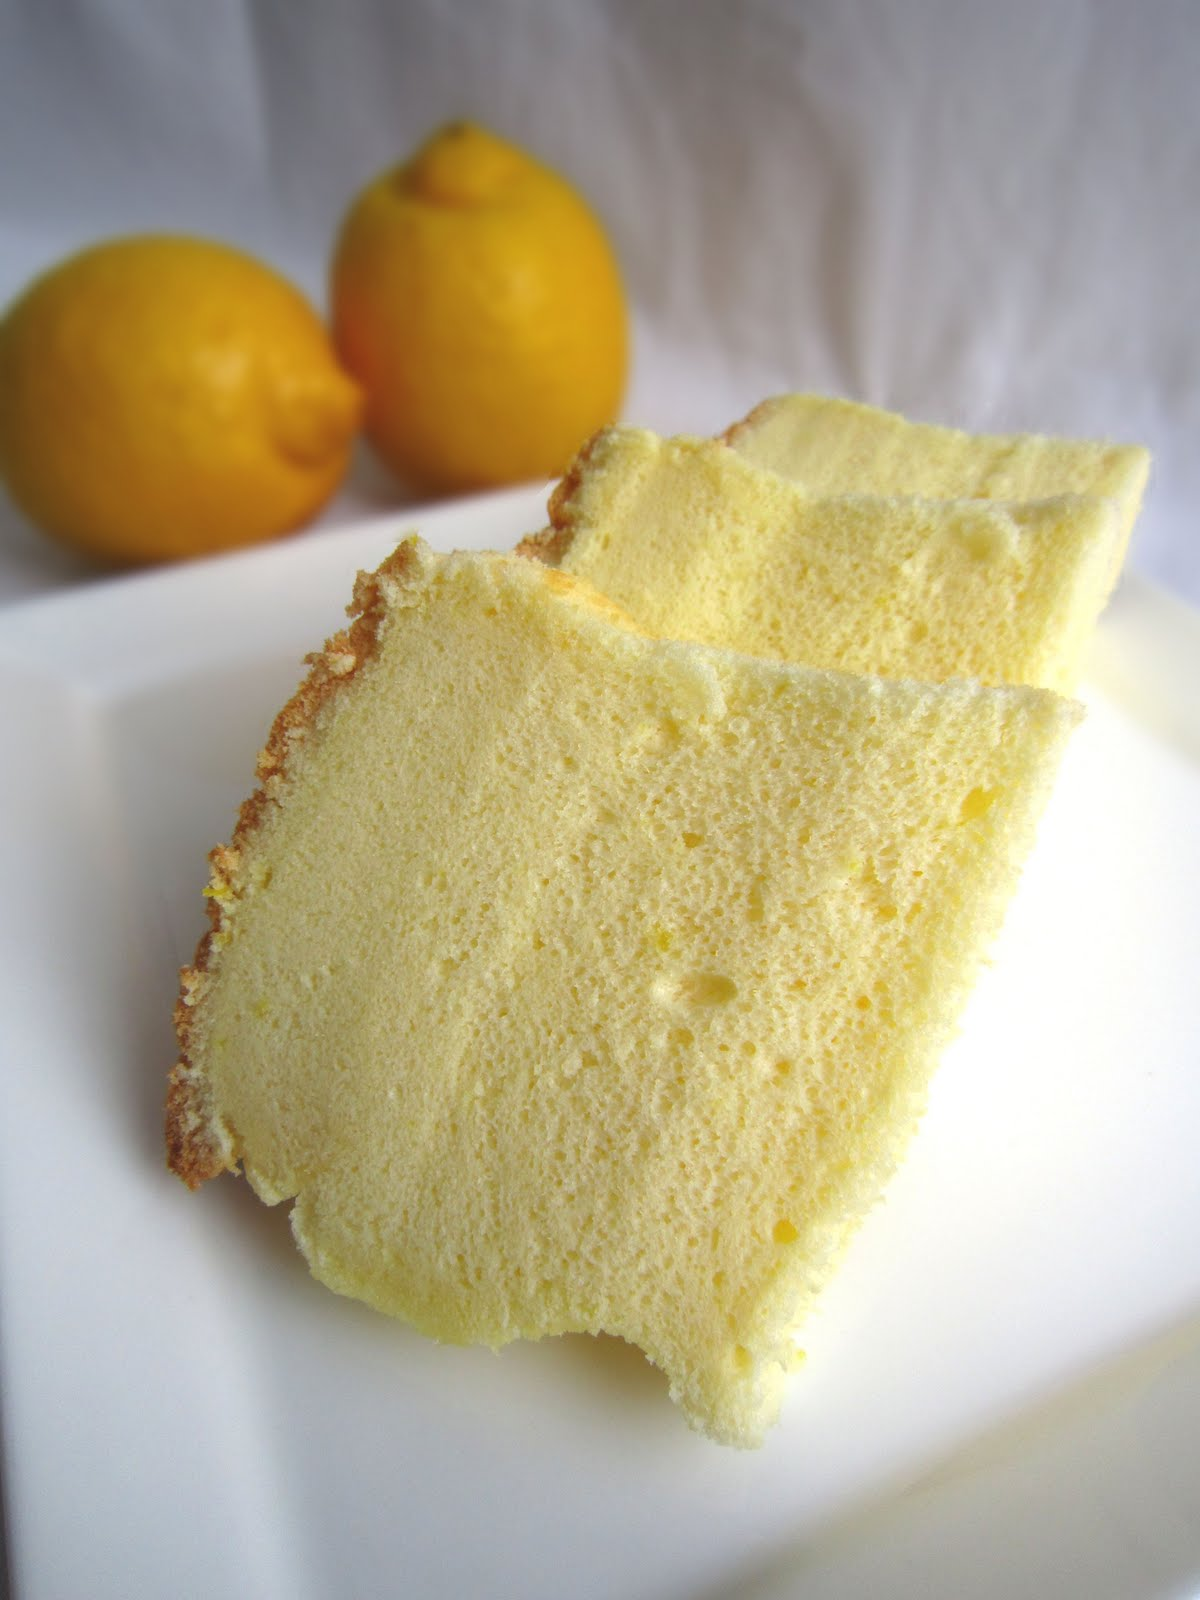 Noms I Must: Lemon Chiffon Cake